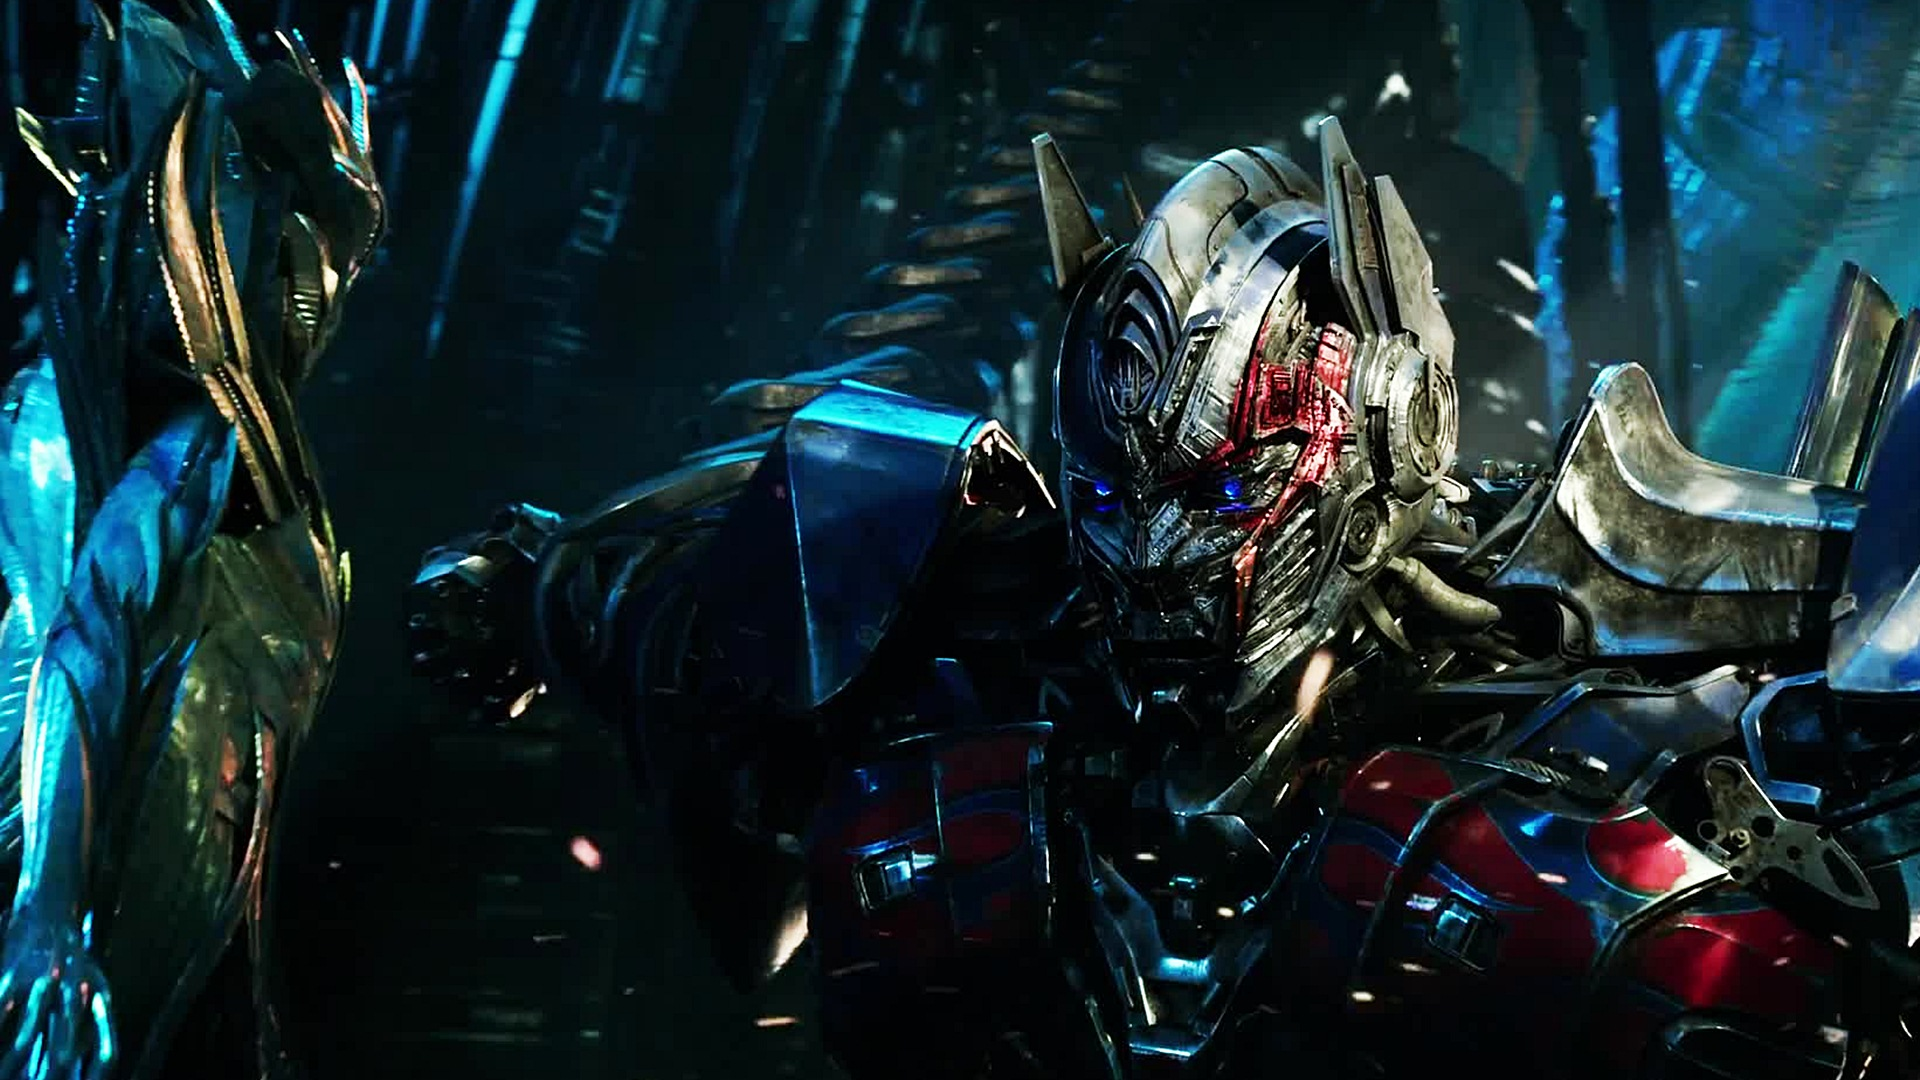 Transformer Hd Wallpapers Posted By Christopher Johnson